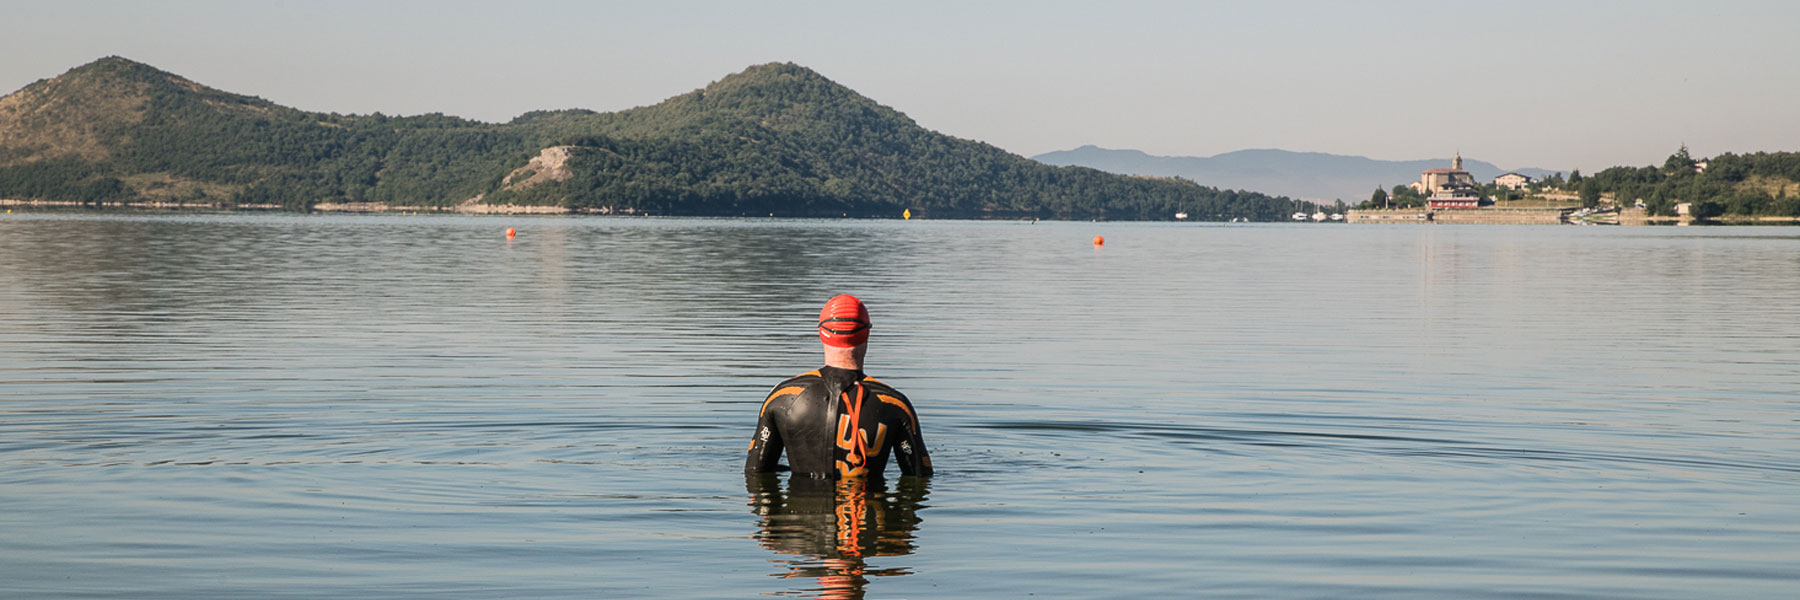 IRONMAN Vitoria-Gasteiz athlete standing in Ulibarri-Gamboa lake located in the Landa Provincial Park who is looking around and ready for the swim